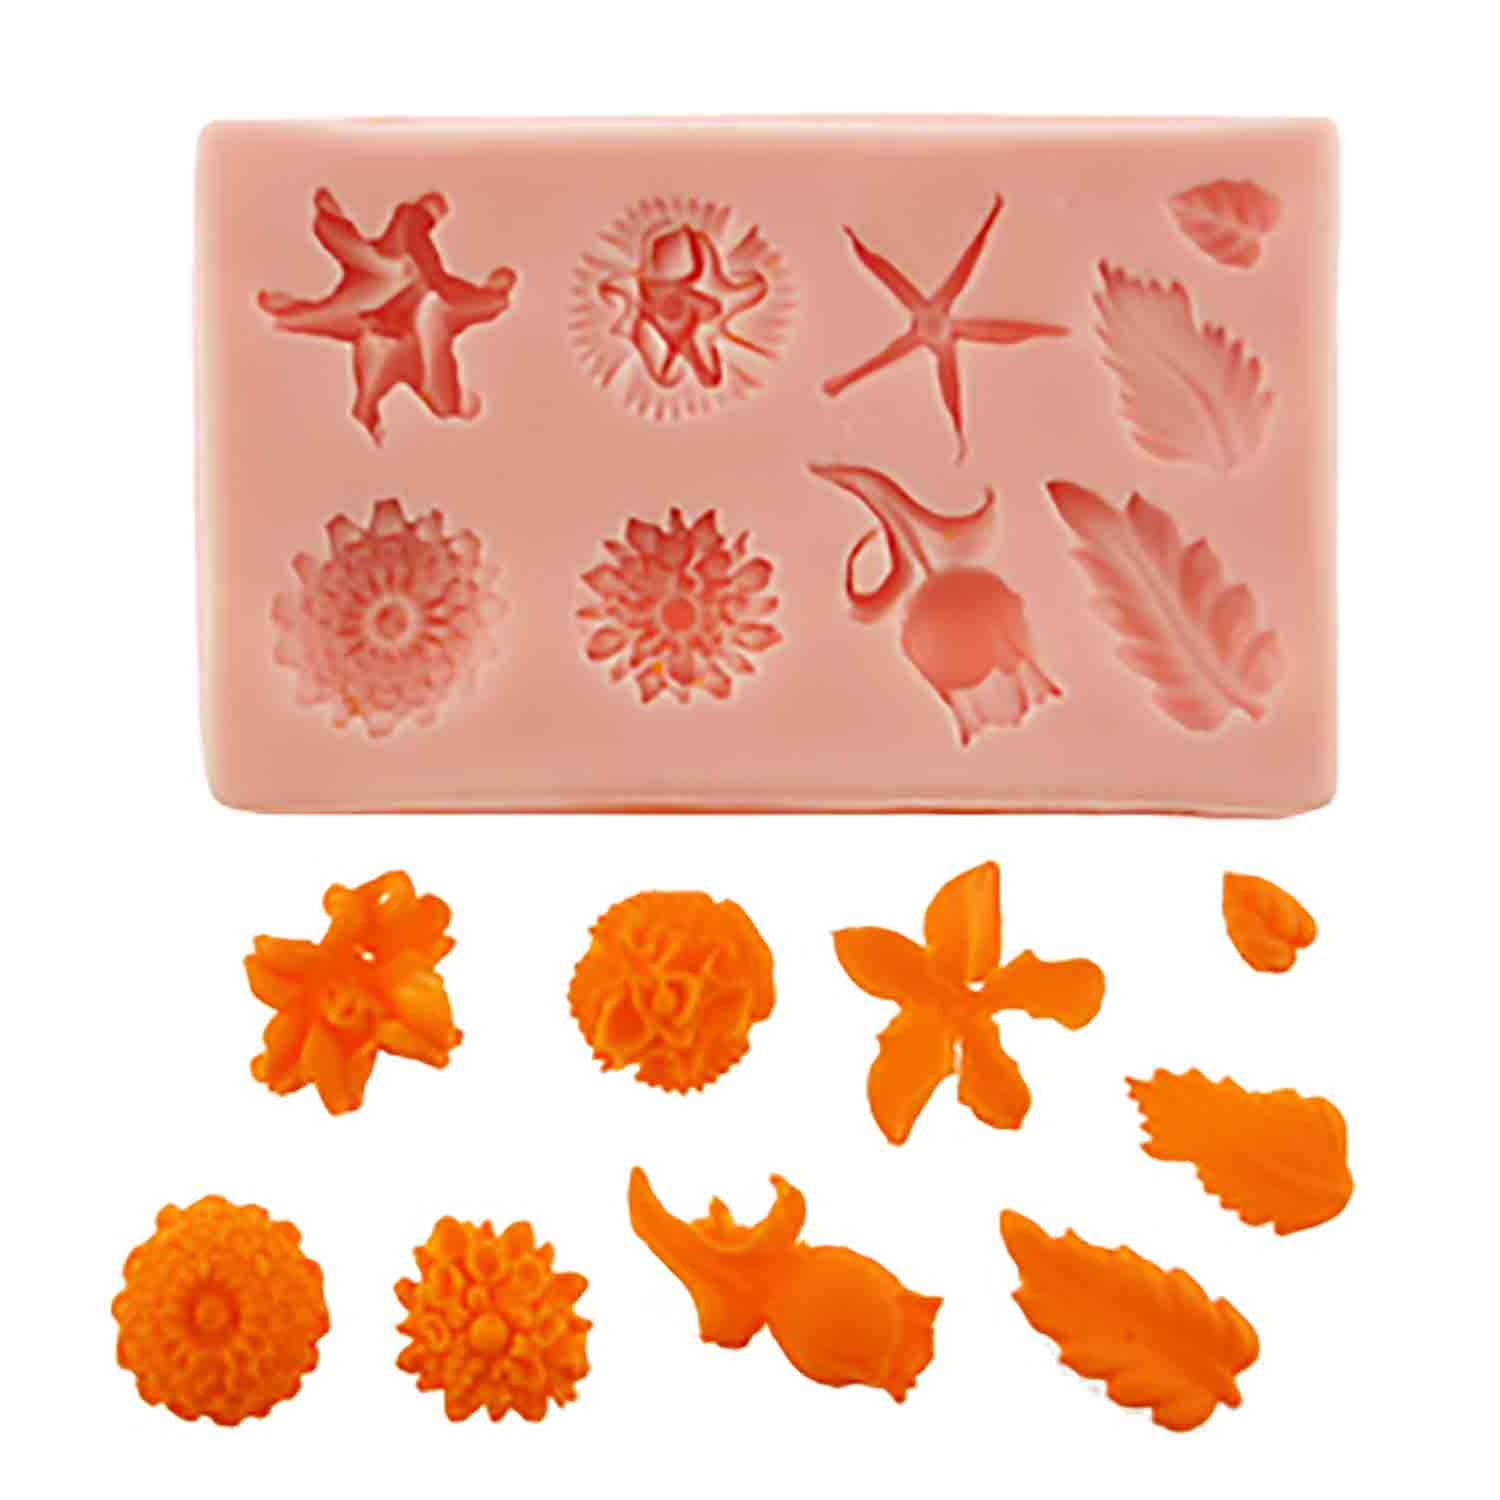 Flowers and Leaves Silicone Mold